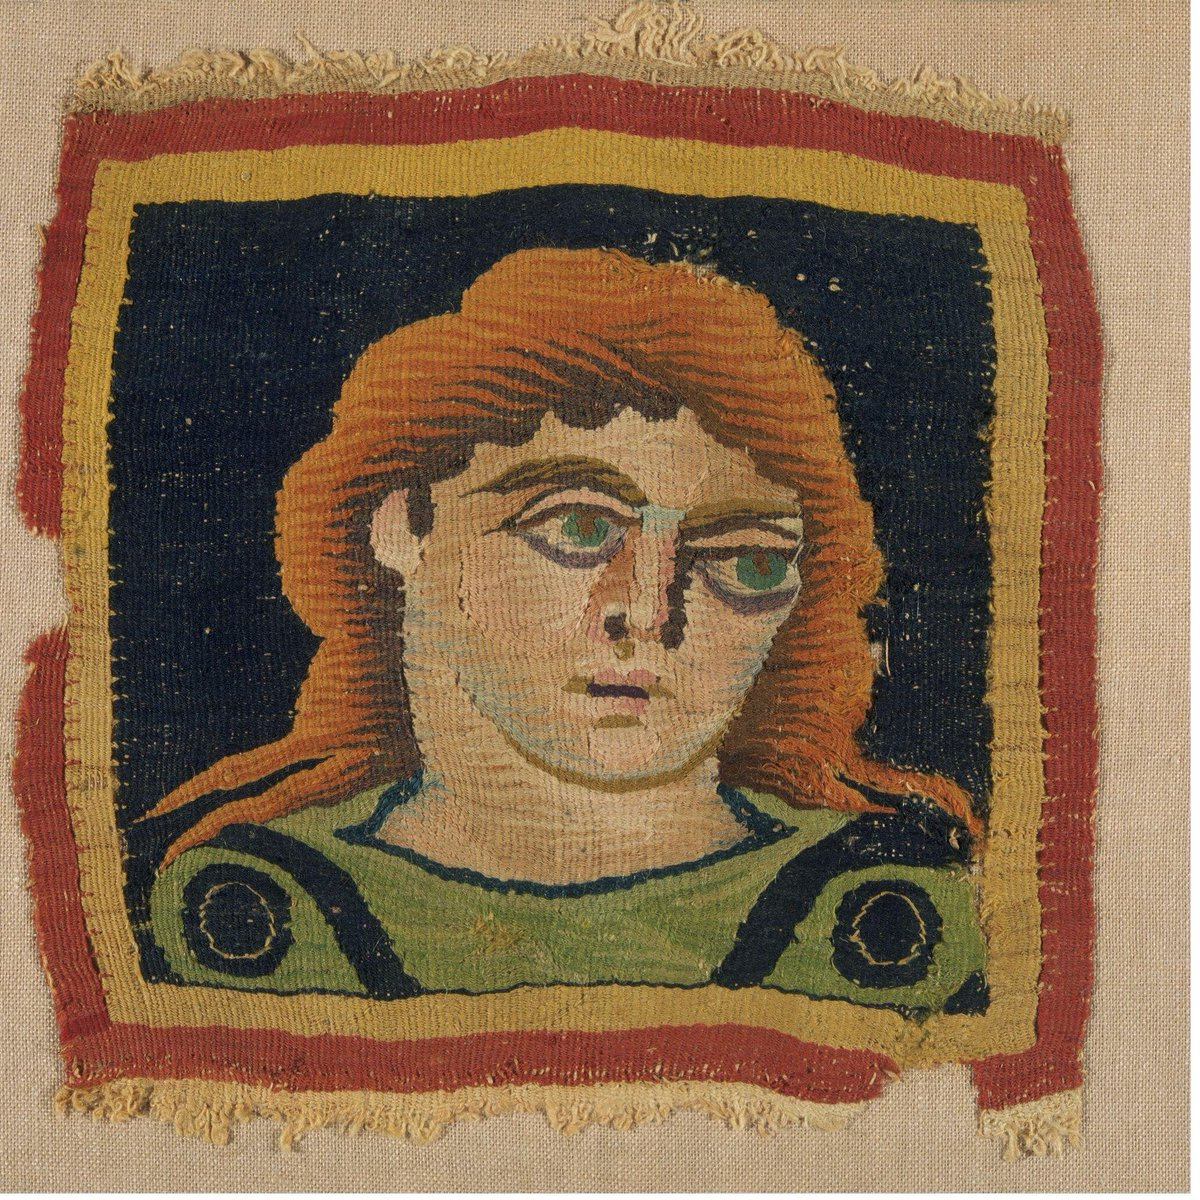 ©Victoria & Albert Museum, London - Square panel depicting a portrait bust of a young man, almost certainly of Adonis, probably to be appliquéd to a tunic or a furnishing textile. Tapestry-woven wool with small quantities of linen. Coloured wools make up the man's head and clothing and the background: his tunic is green with purple shoulder-bands and roundels; the background is dark purple; the border is red and yellow.